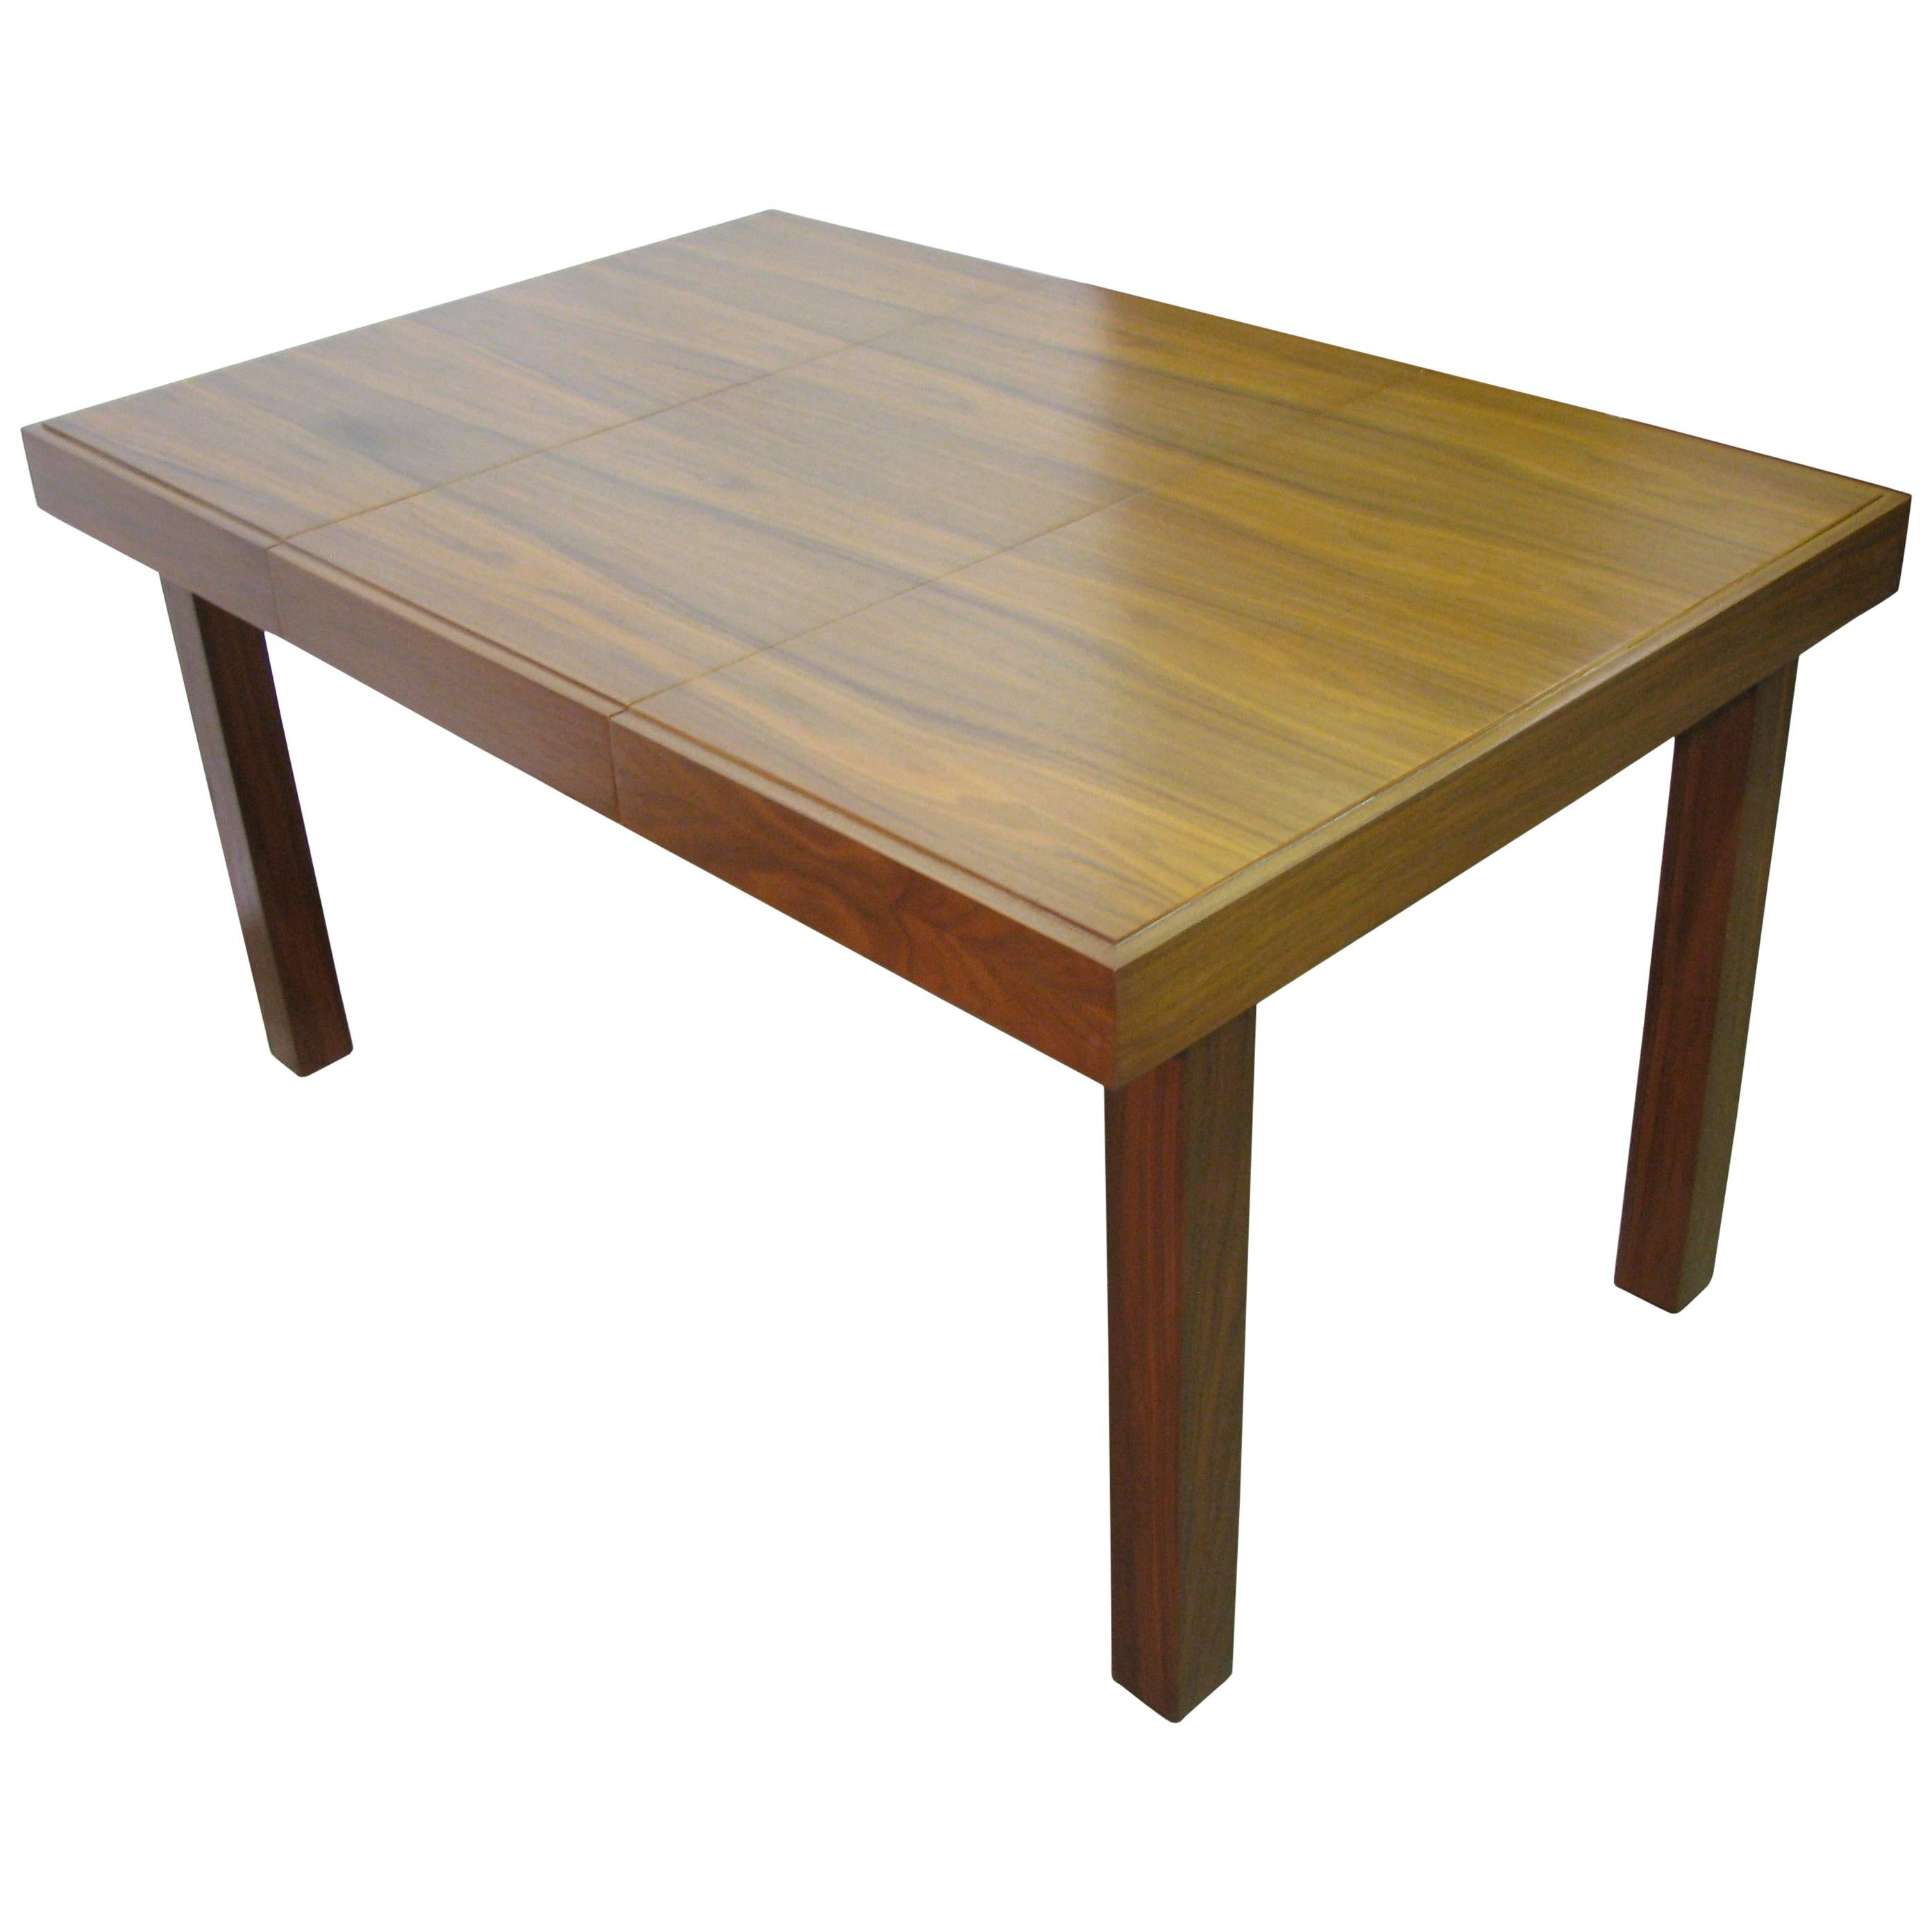 1950s George Nelson for Herman Miller Midcentury Walnut Dining Table